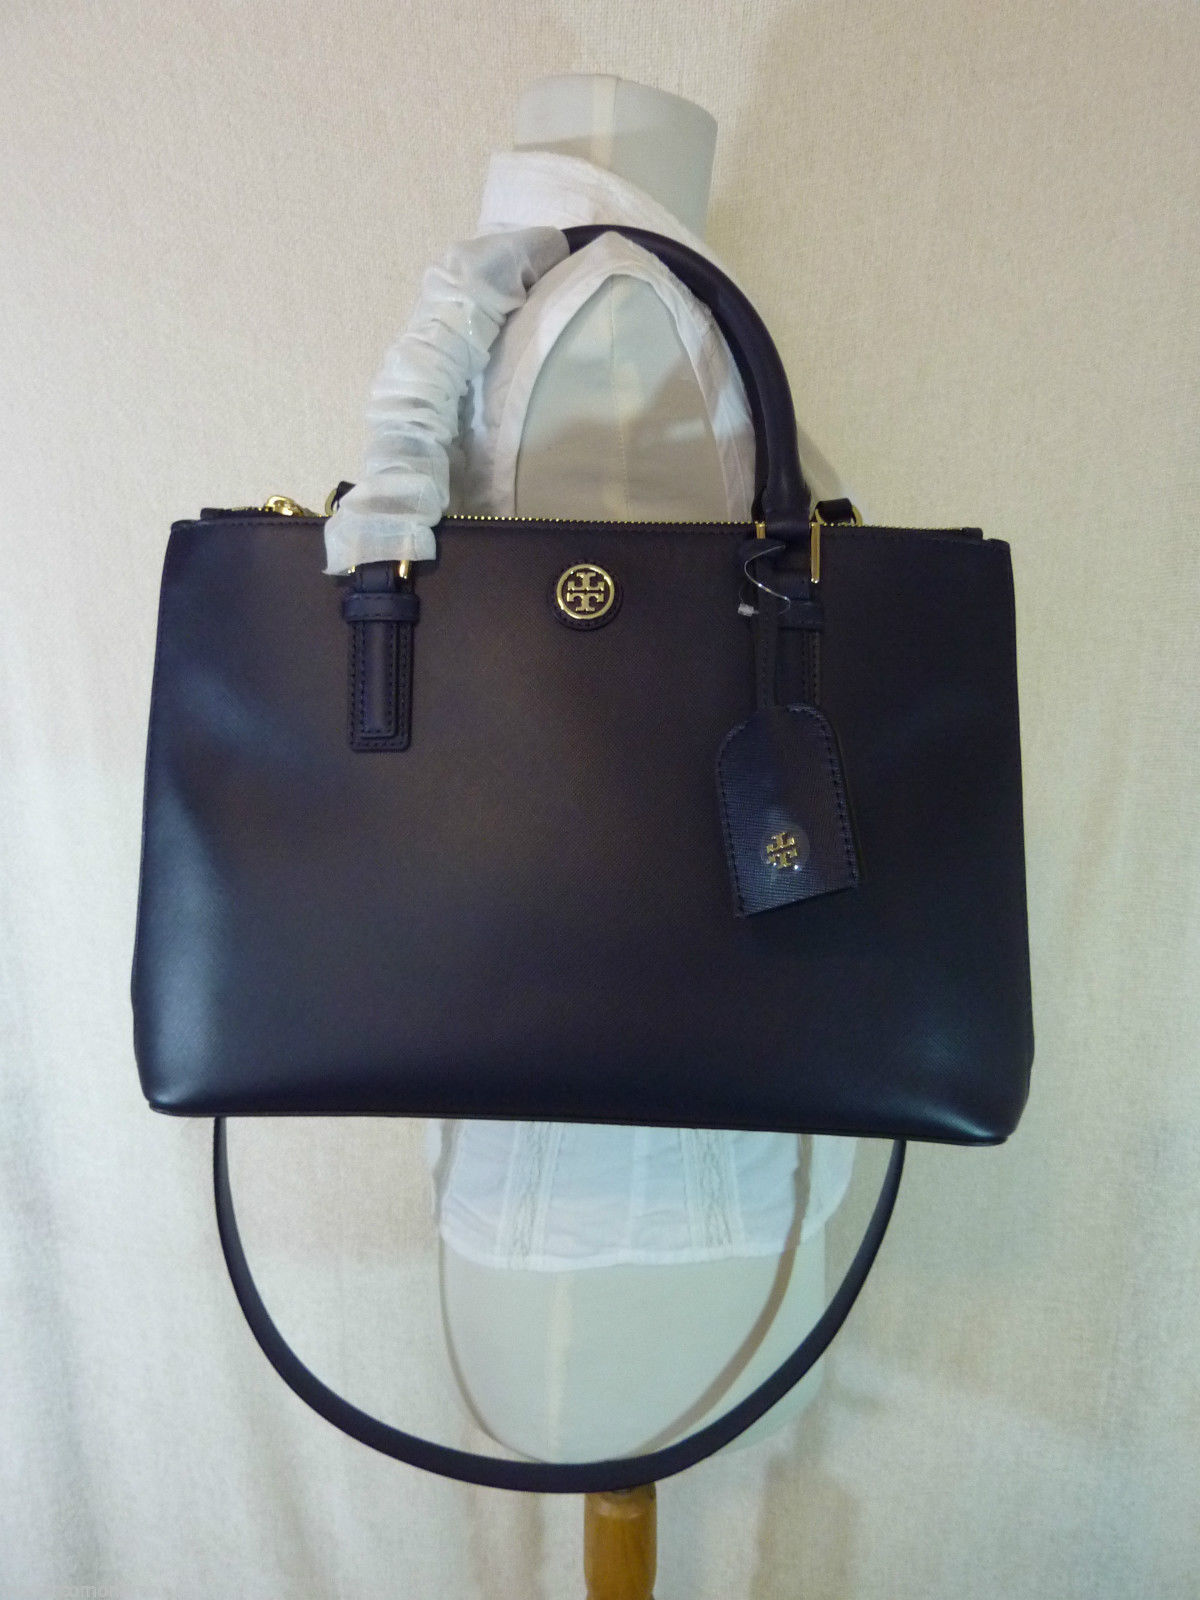 Primary image for Tory Burch Navy Blue Saffiano Leather Robinson Mini Double-Zip Tote